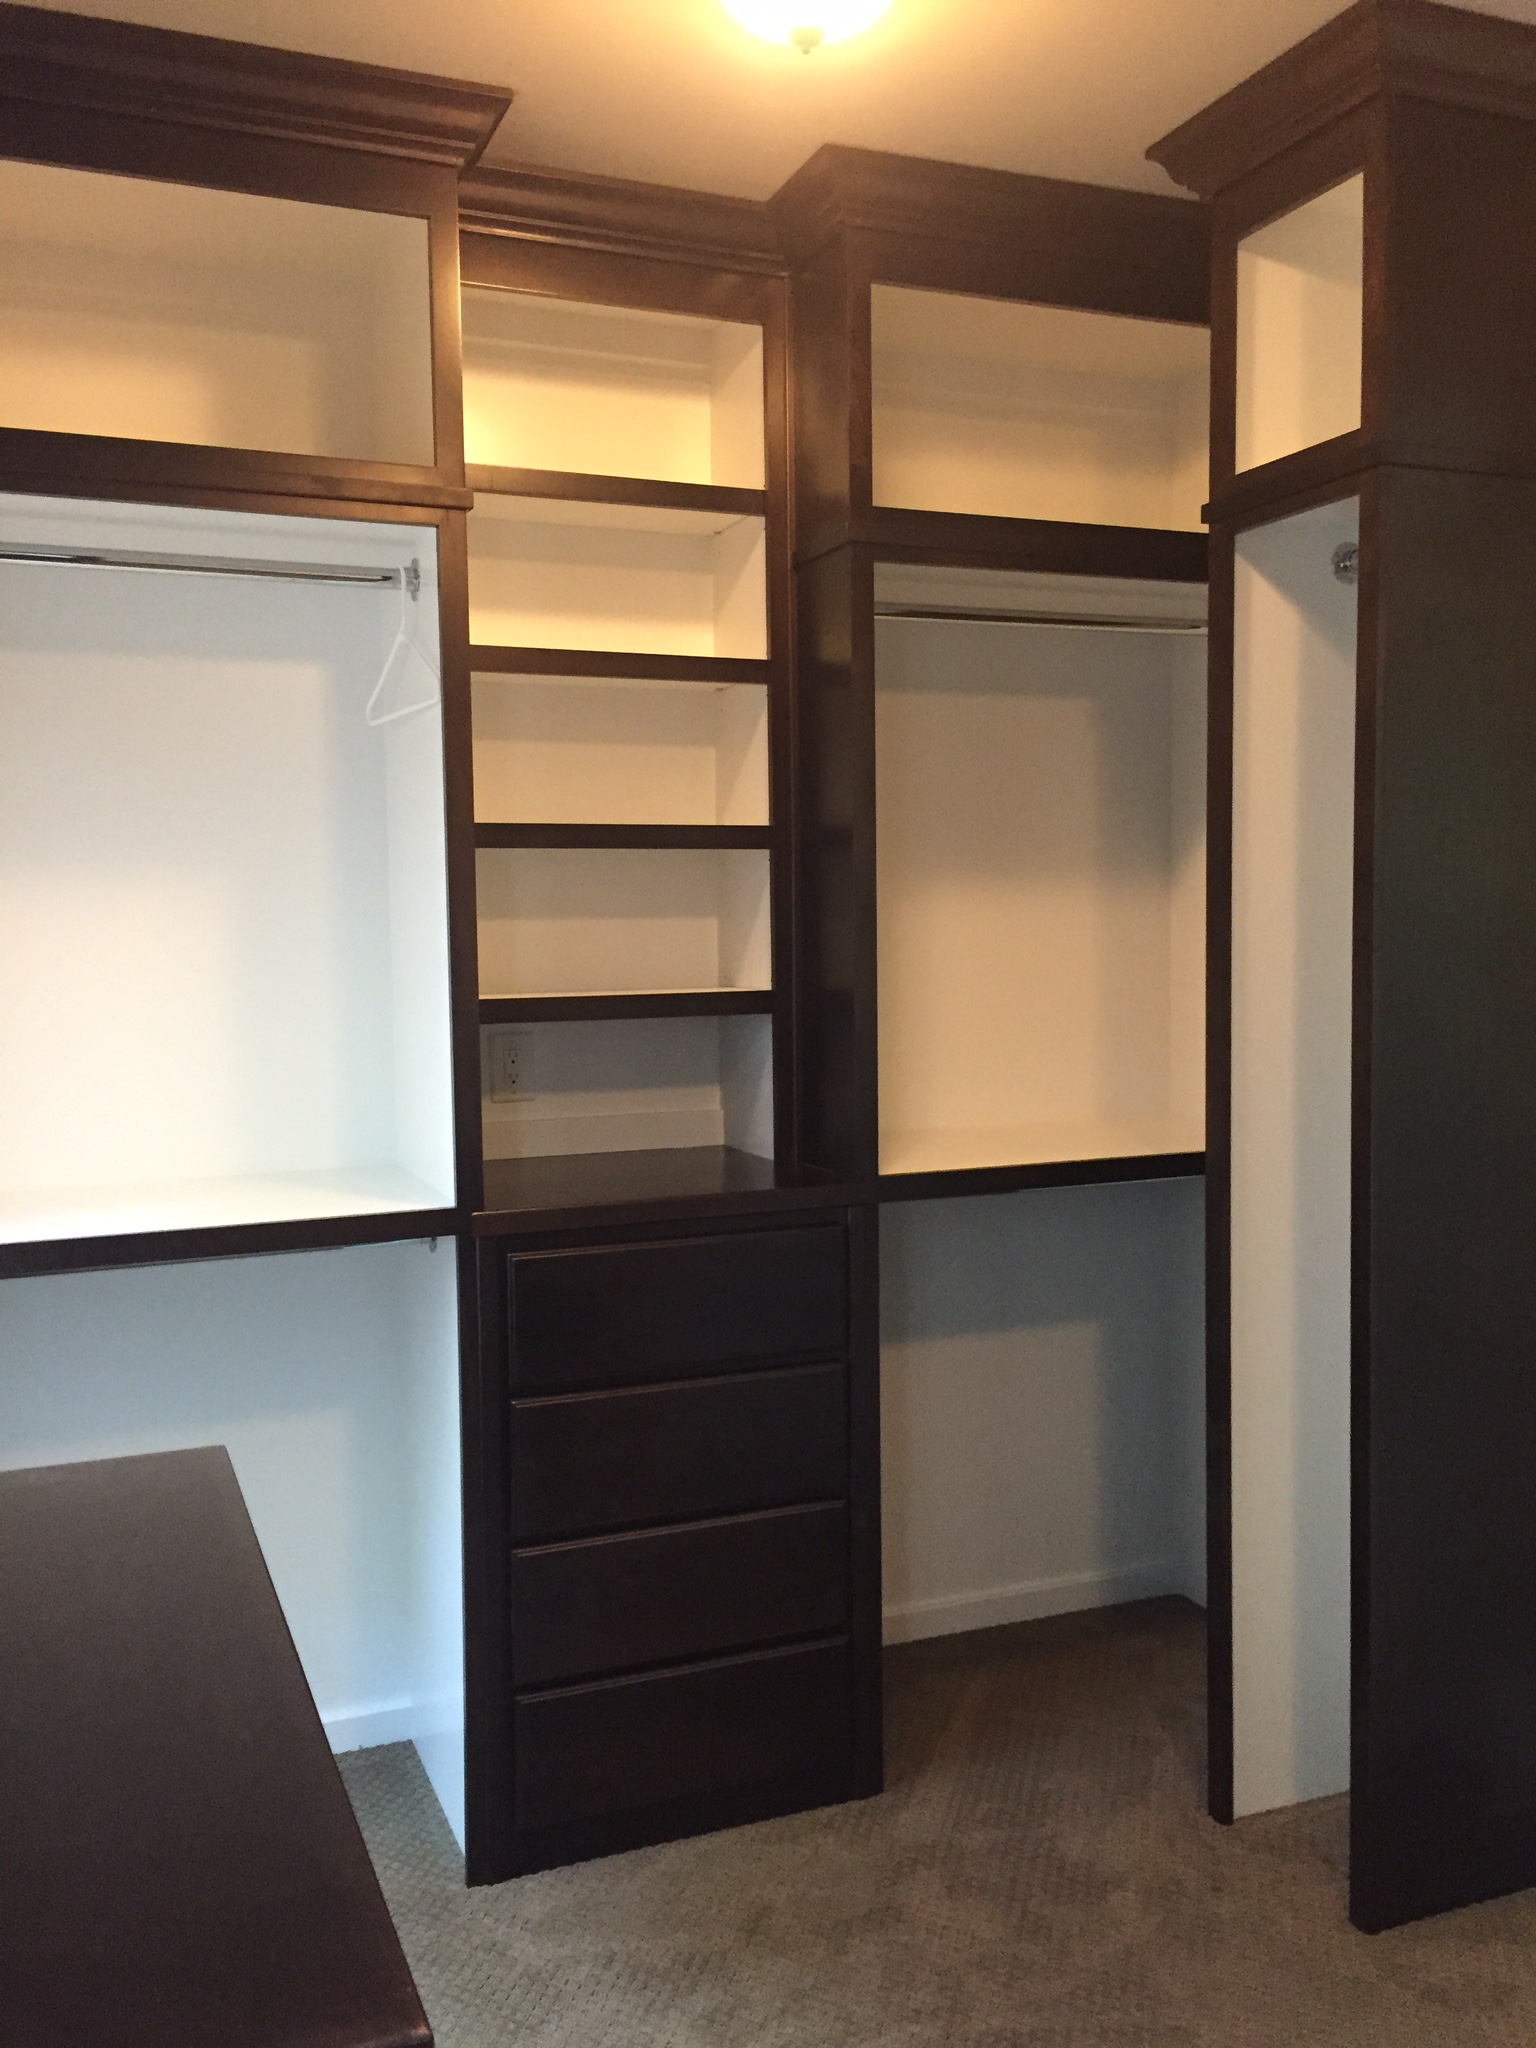 Stained Master Closet with Painted Interior, Open Cubbies, Hanging with Shelf Above, and Island with Slab Drawers